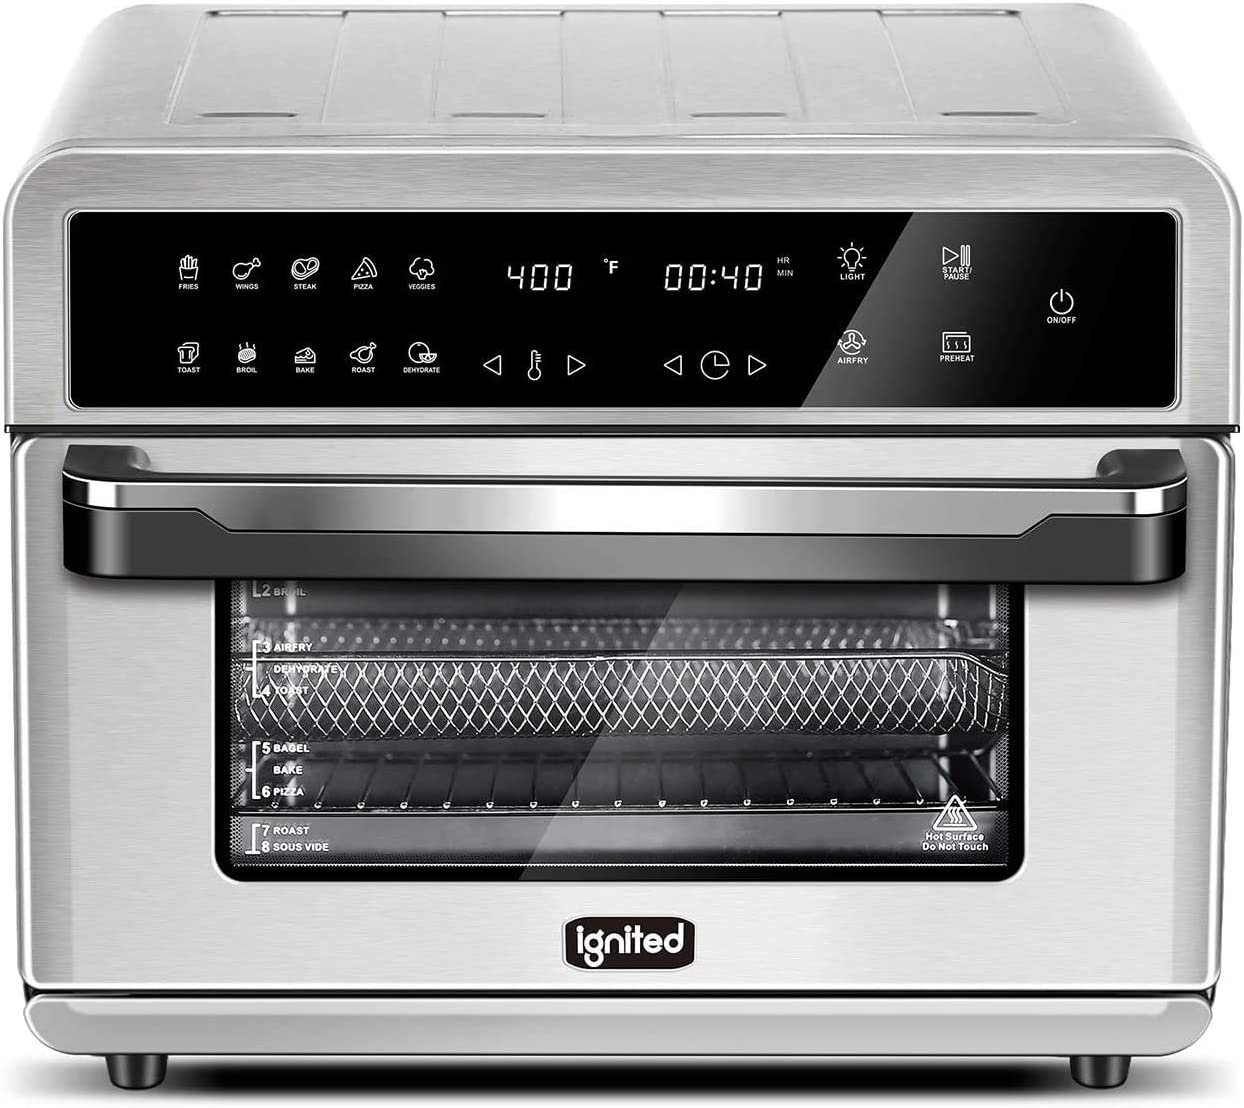 ignited Air Fryer Toaster Oven 26.4 Quarts Family Size Large Capacity Oven For Bake Broil Pizza Roast Toast